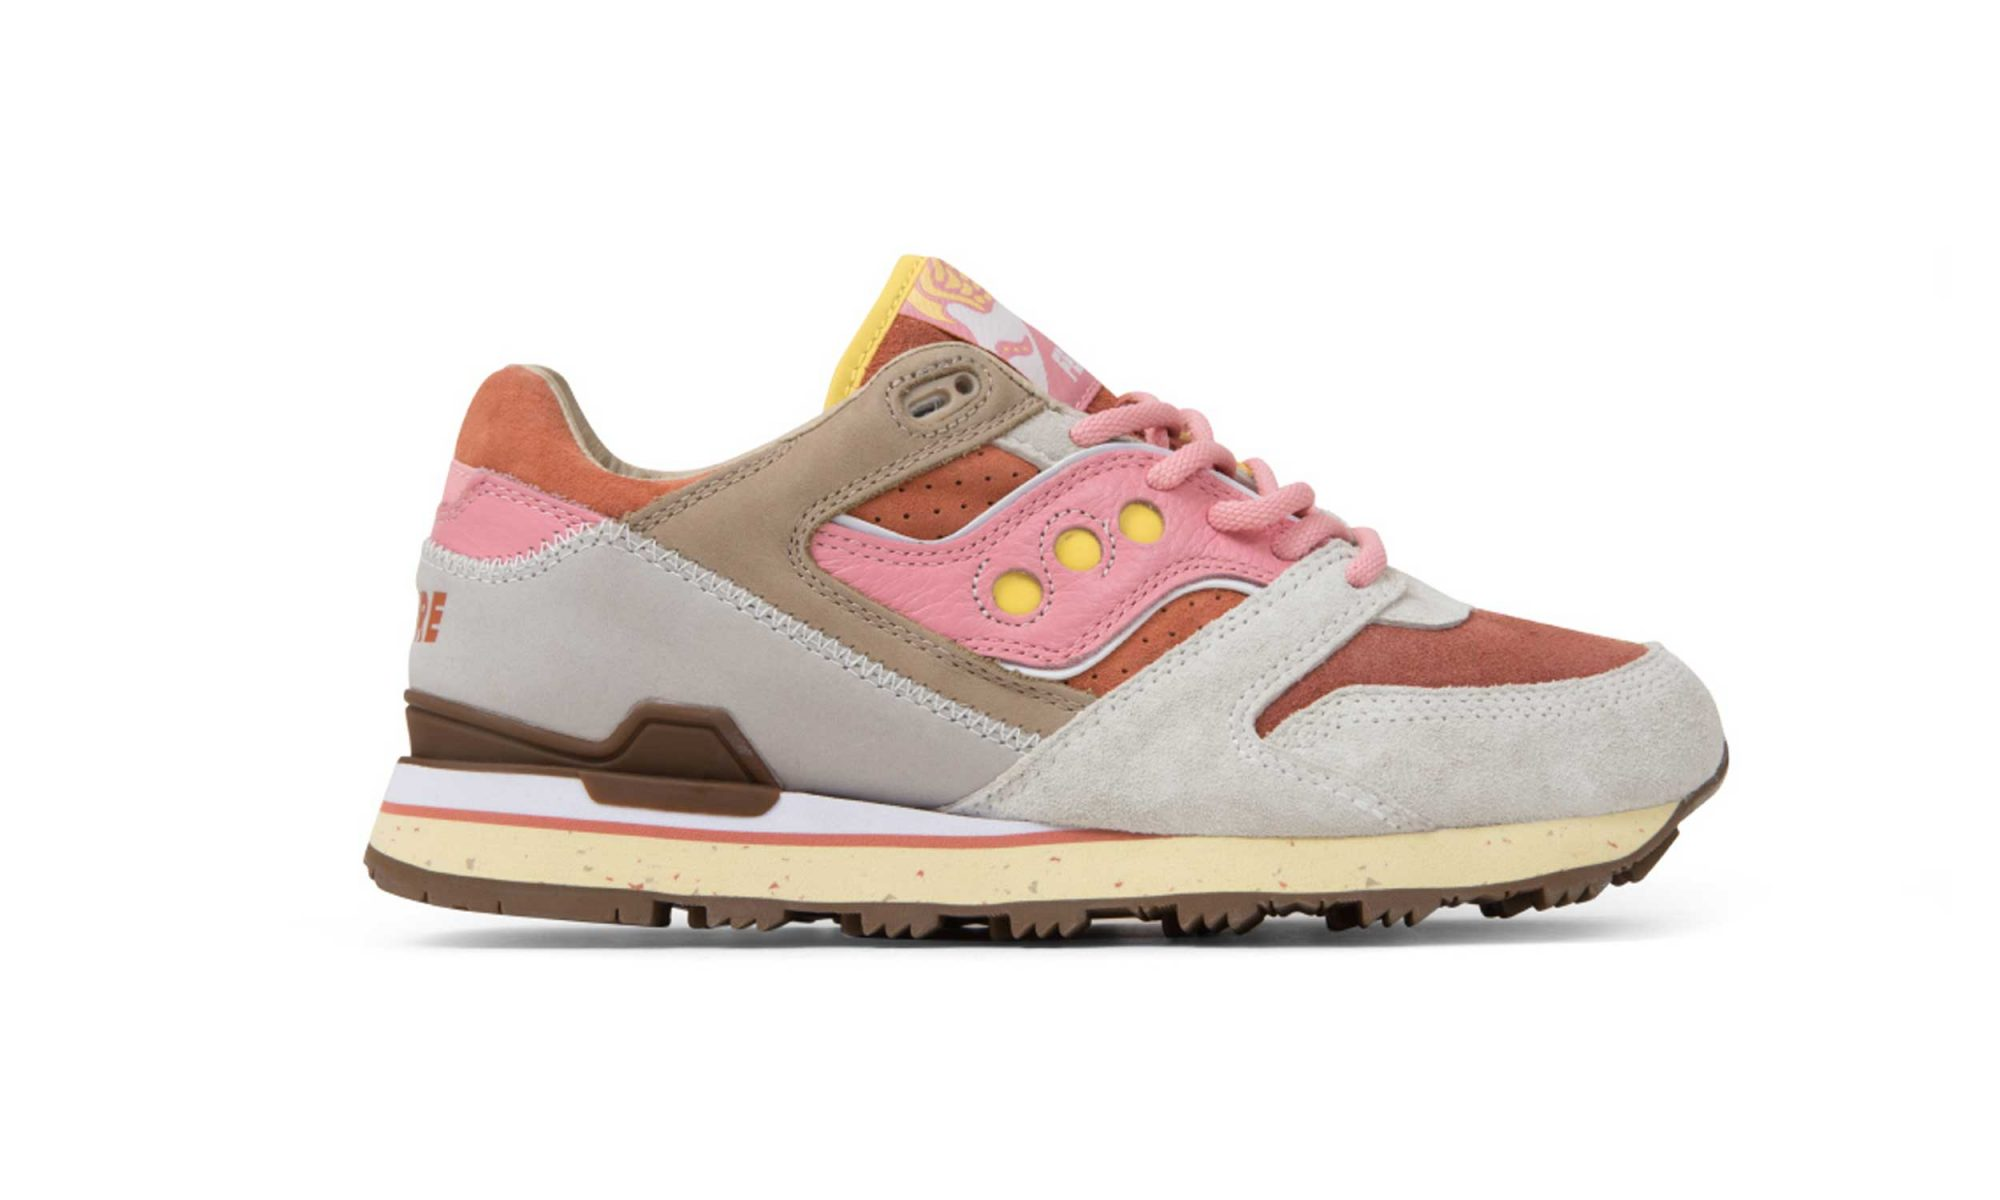 EC: These Bacon and Egg Sneakers Are the Perfect Gift for the Cool Teen in Your Life